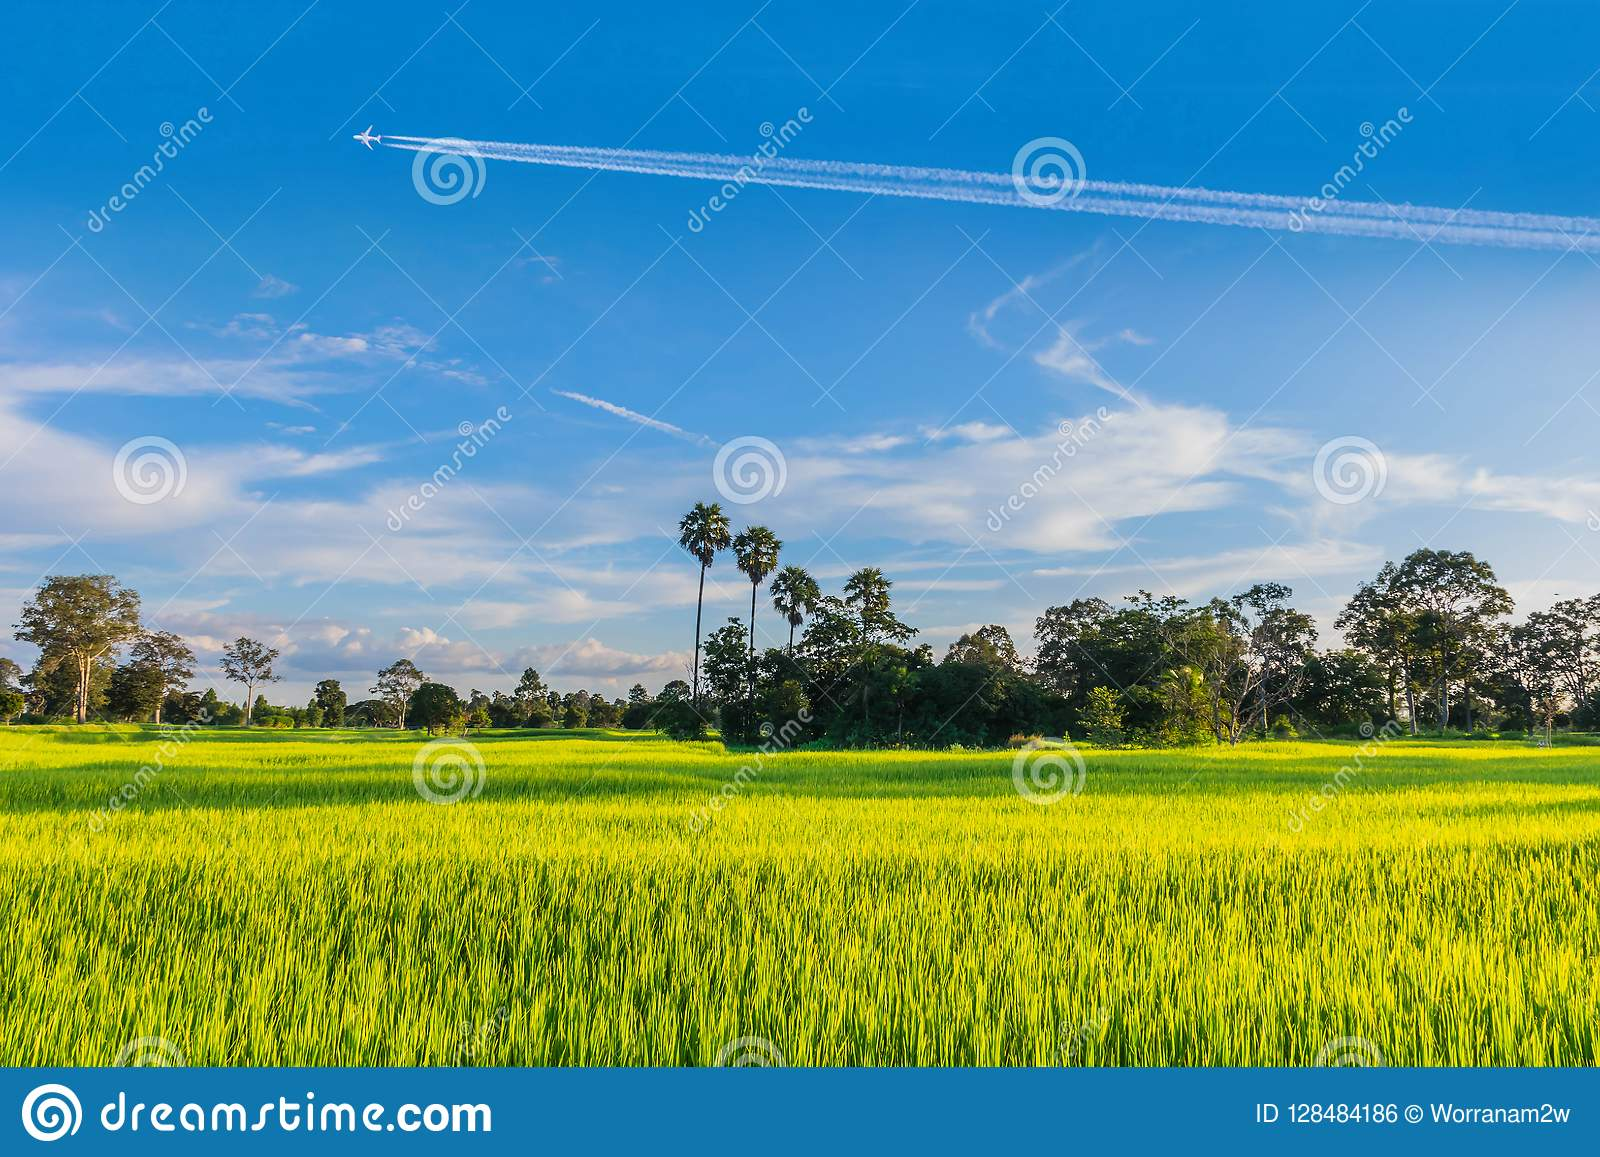 Semi Silhouette Green Paddy Rice Field With The Beautiful Sky And